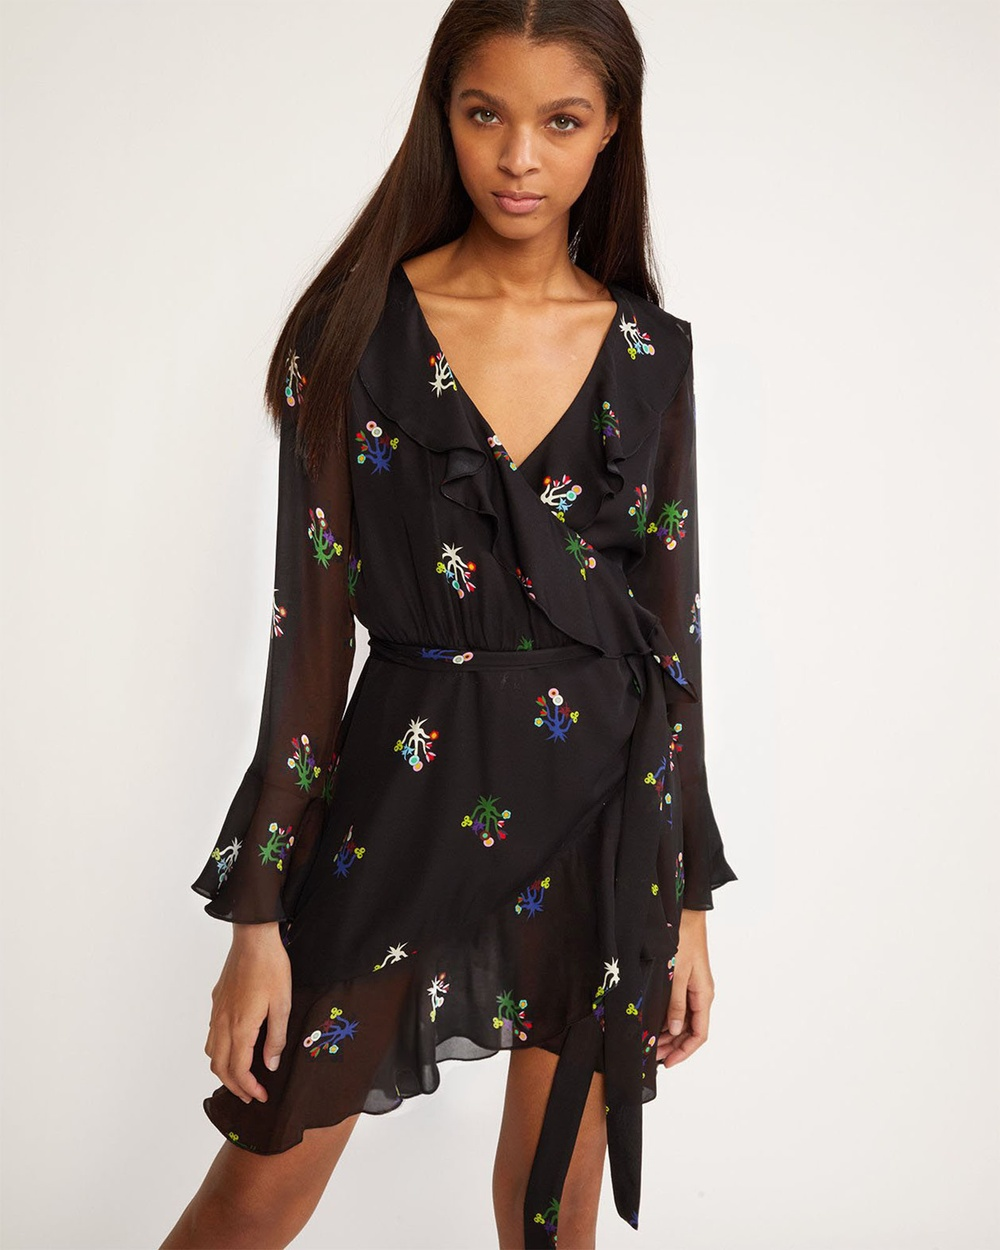 Cynthia Rowley Black Floral Malibu Ruffle Wrap Dress Printed Dresses Black Black Floral Malibu Ruffle Wrap Dress